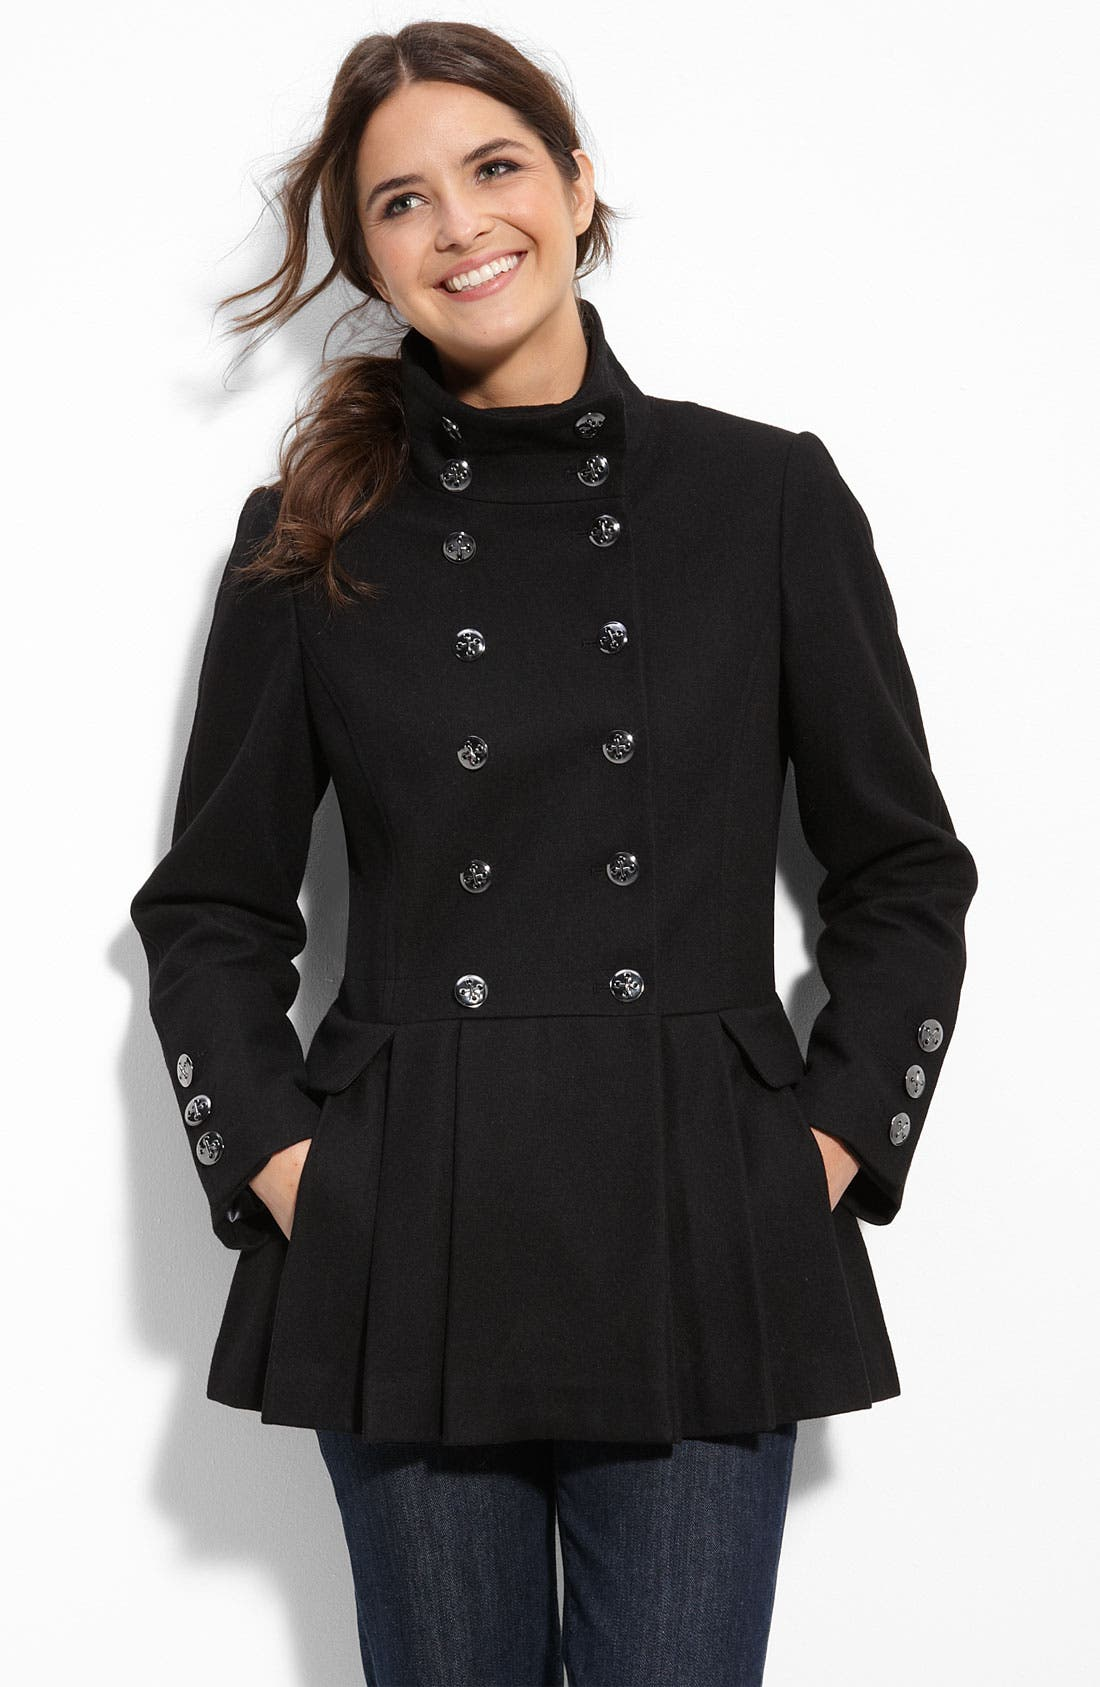 Alternate Image 1 Selected - Calvin Klein Military Inspired Wool Blend Coat